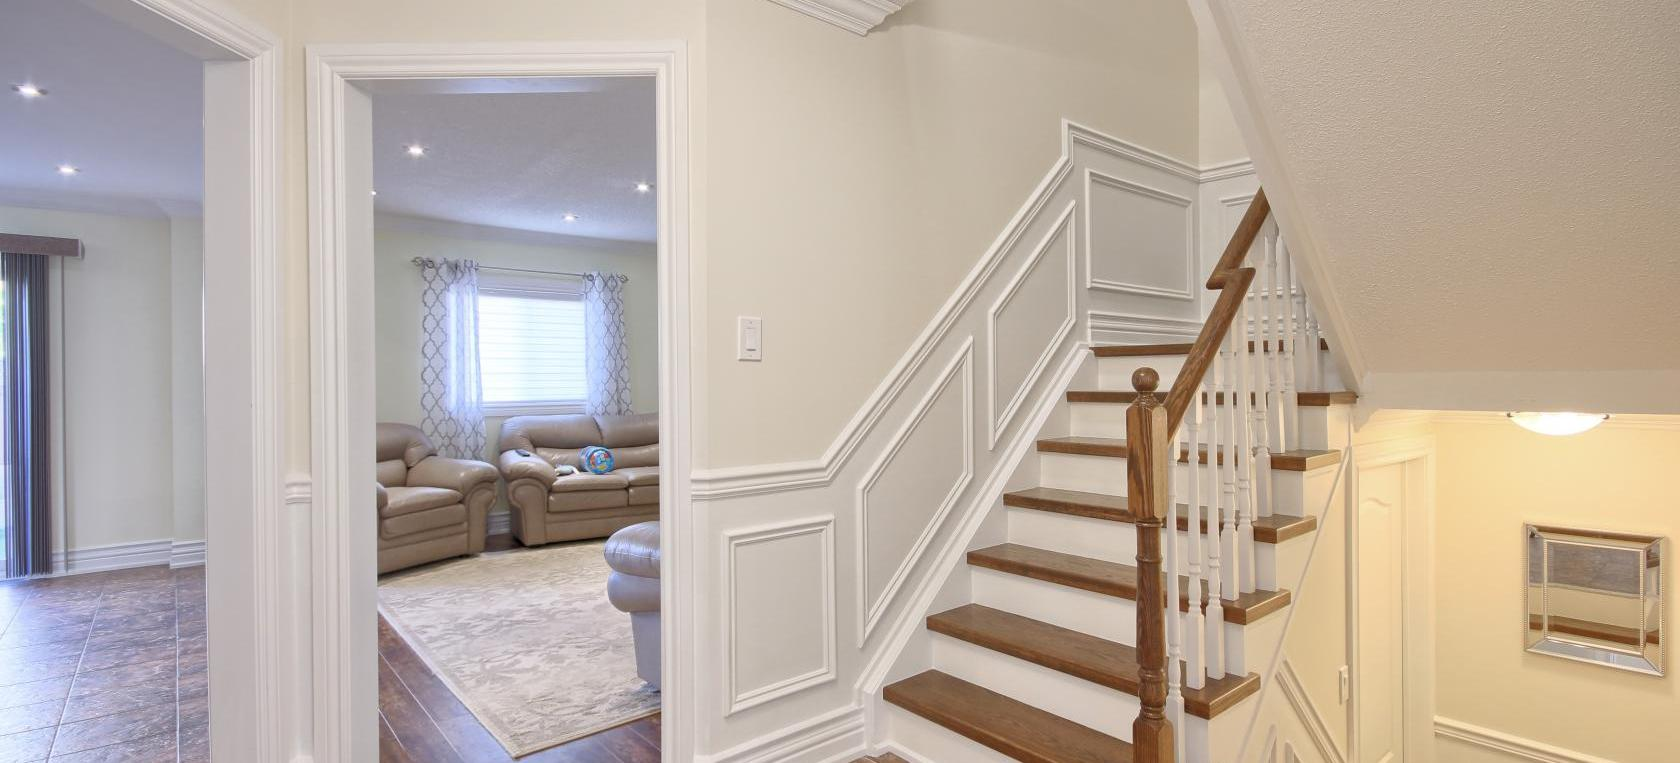 Photo of stair trim